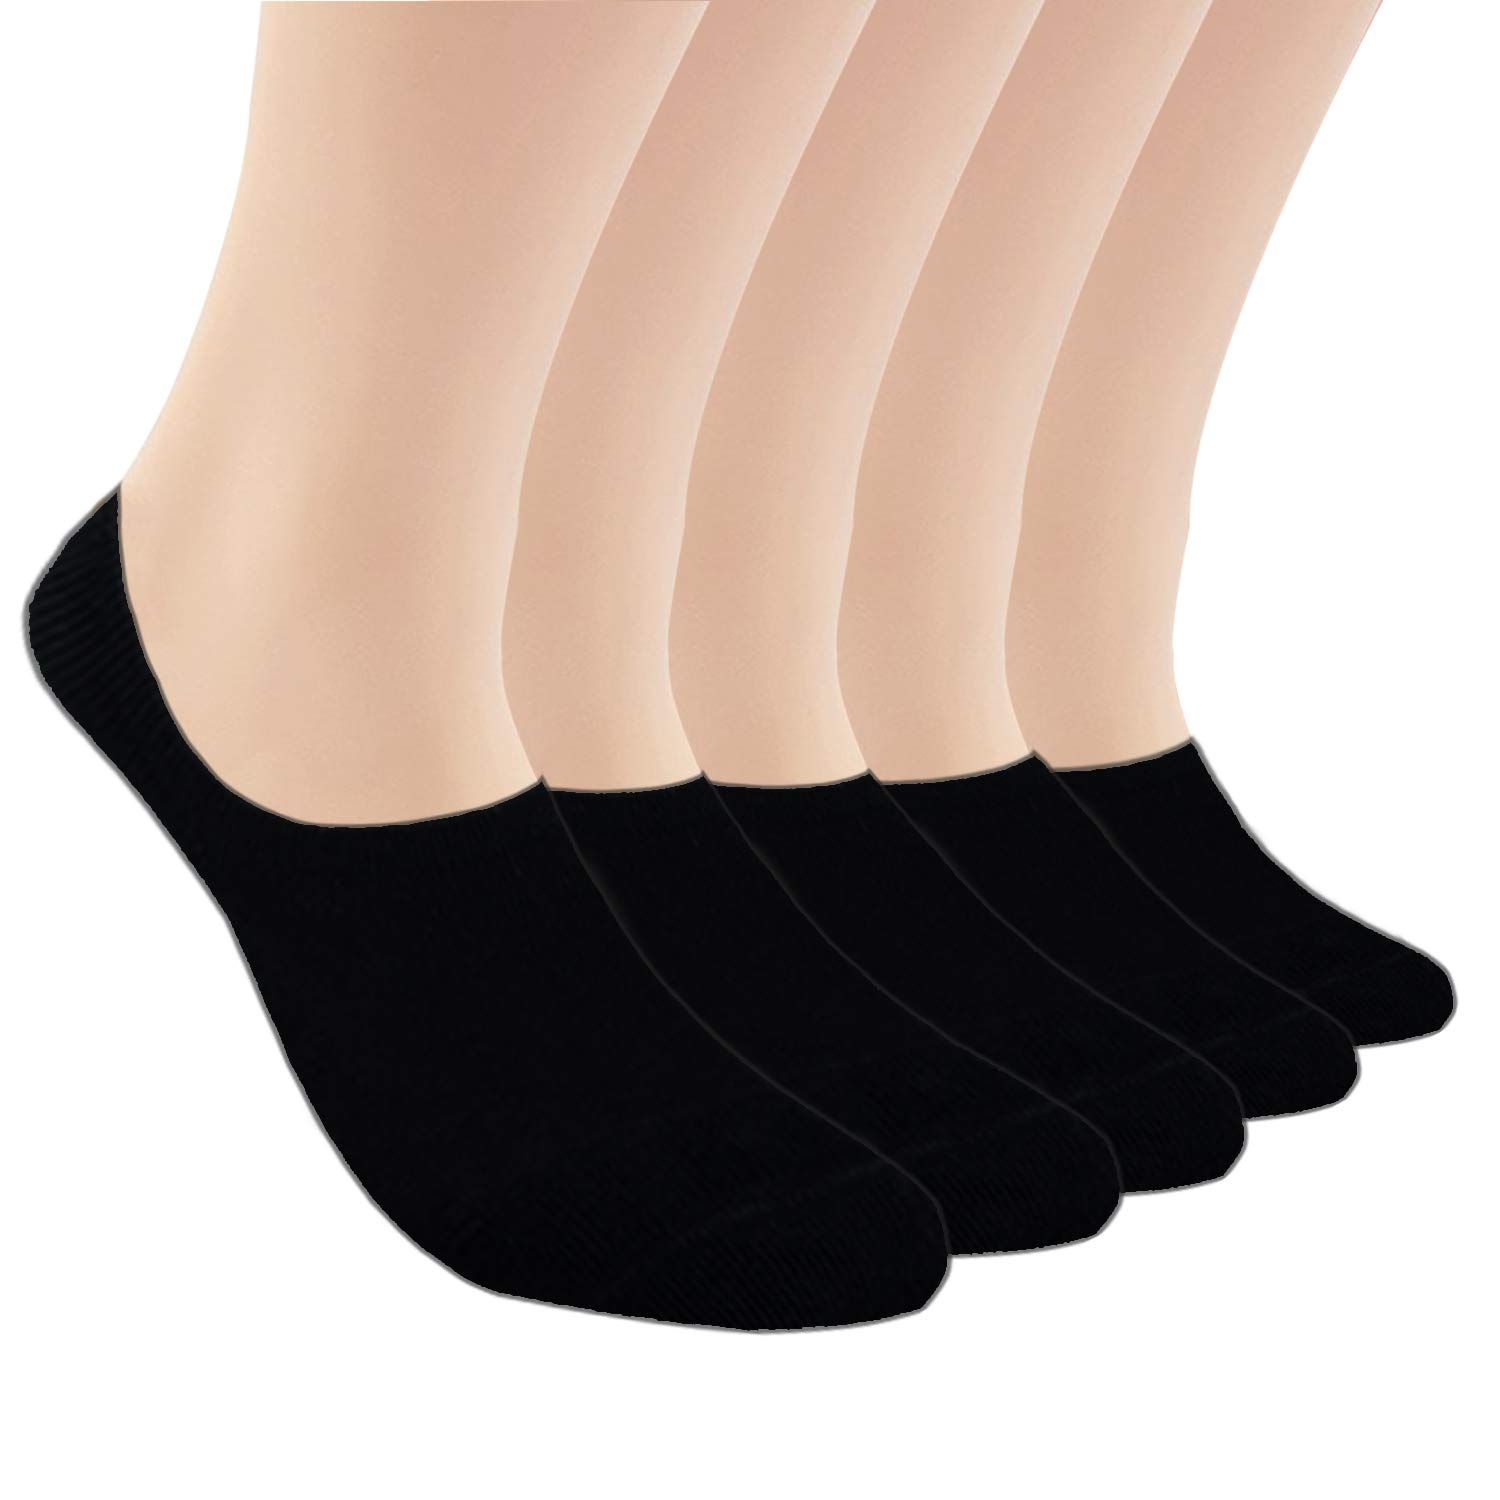 cc93ee10f2d44 No Show Socks Women Athletic Cushion Cotton Socks- 5/10 Pack-Low Cut